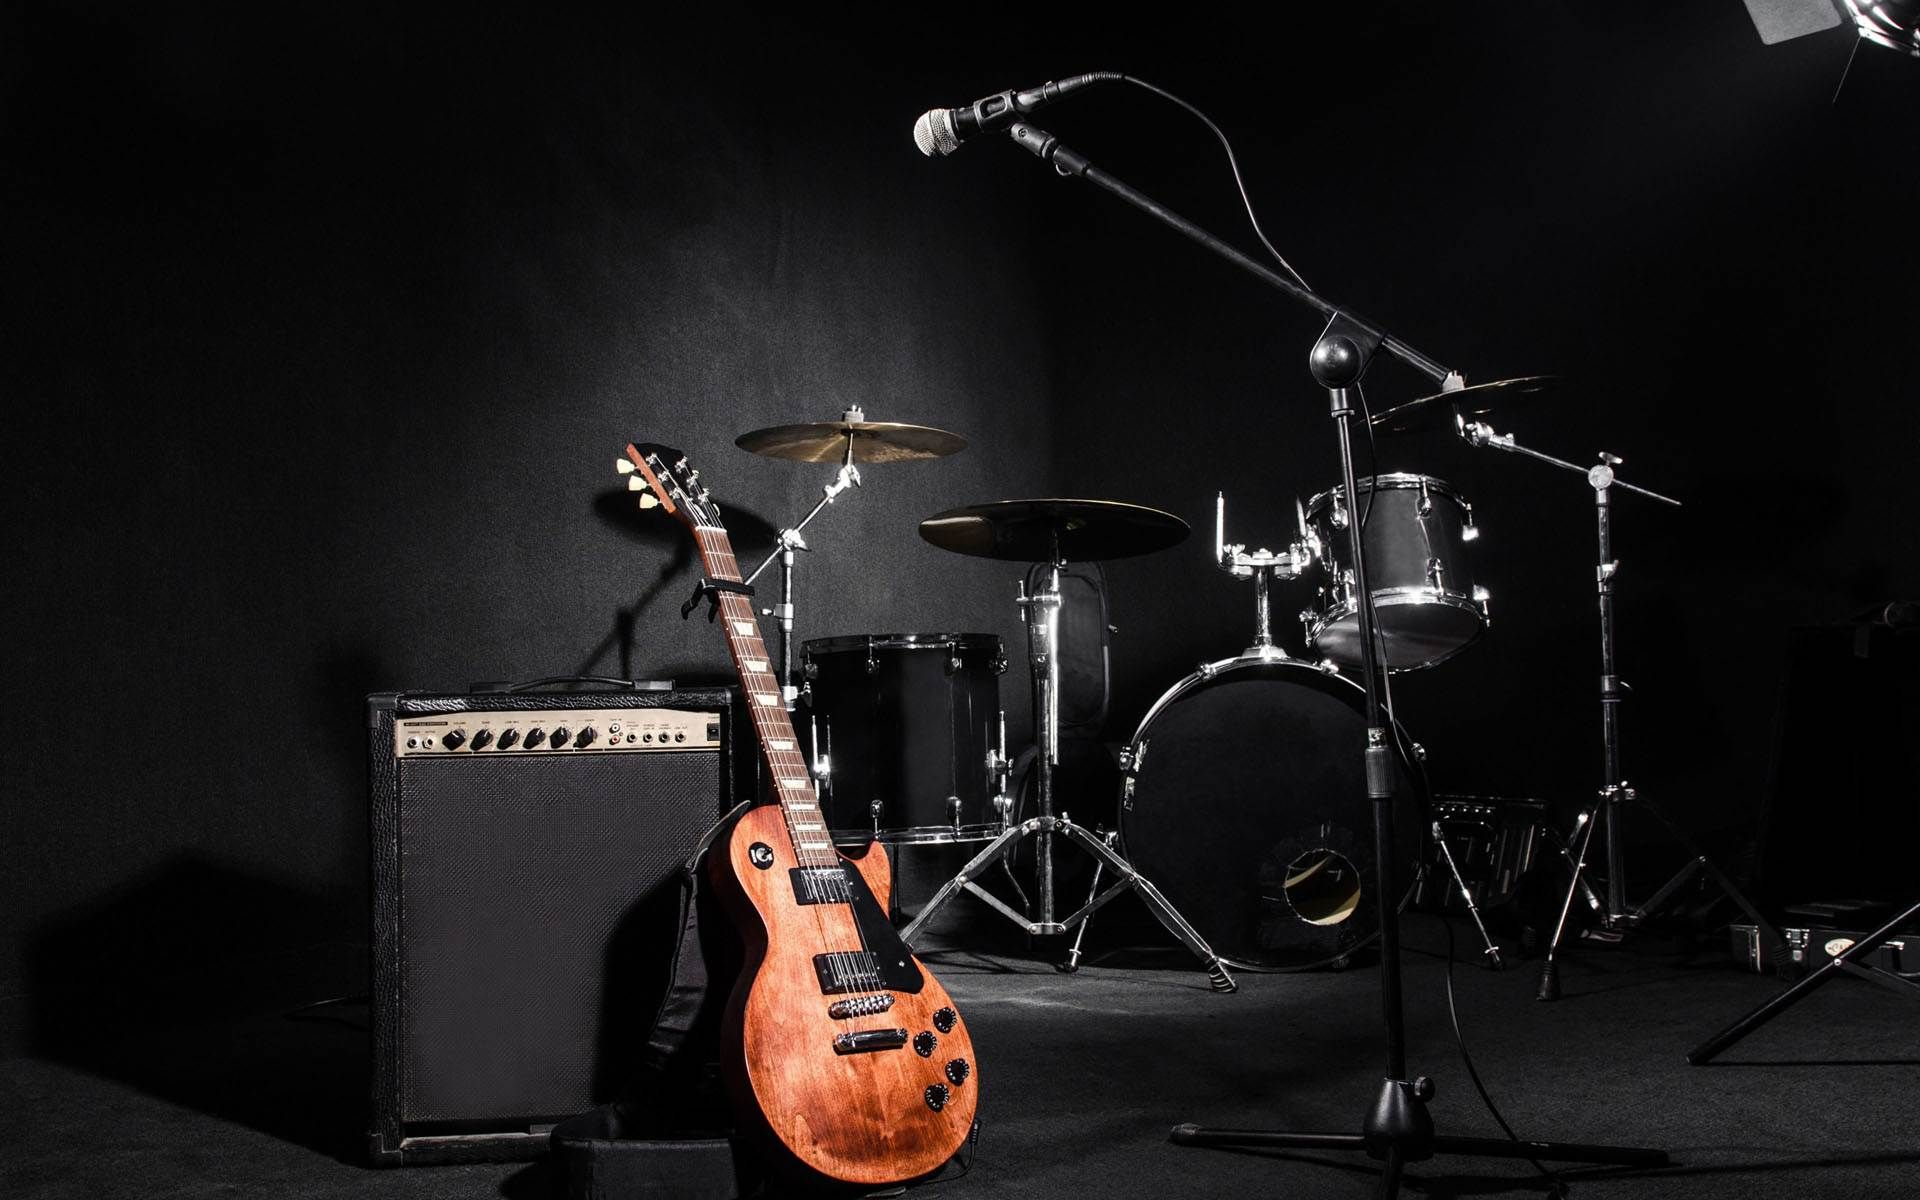 Guitar Wallpaper Android Apps on Google Play 1920×1200